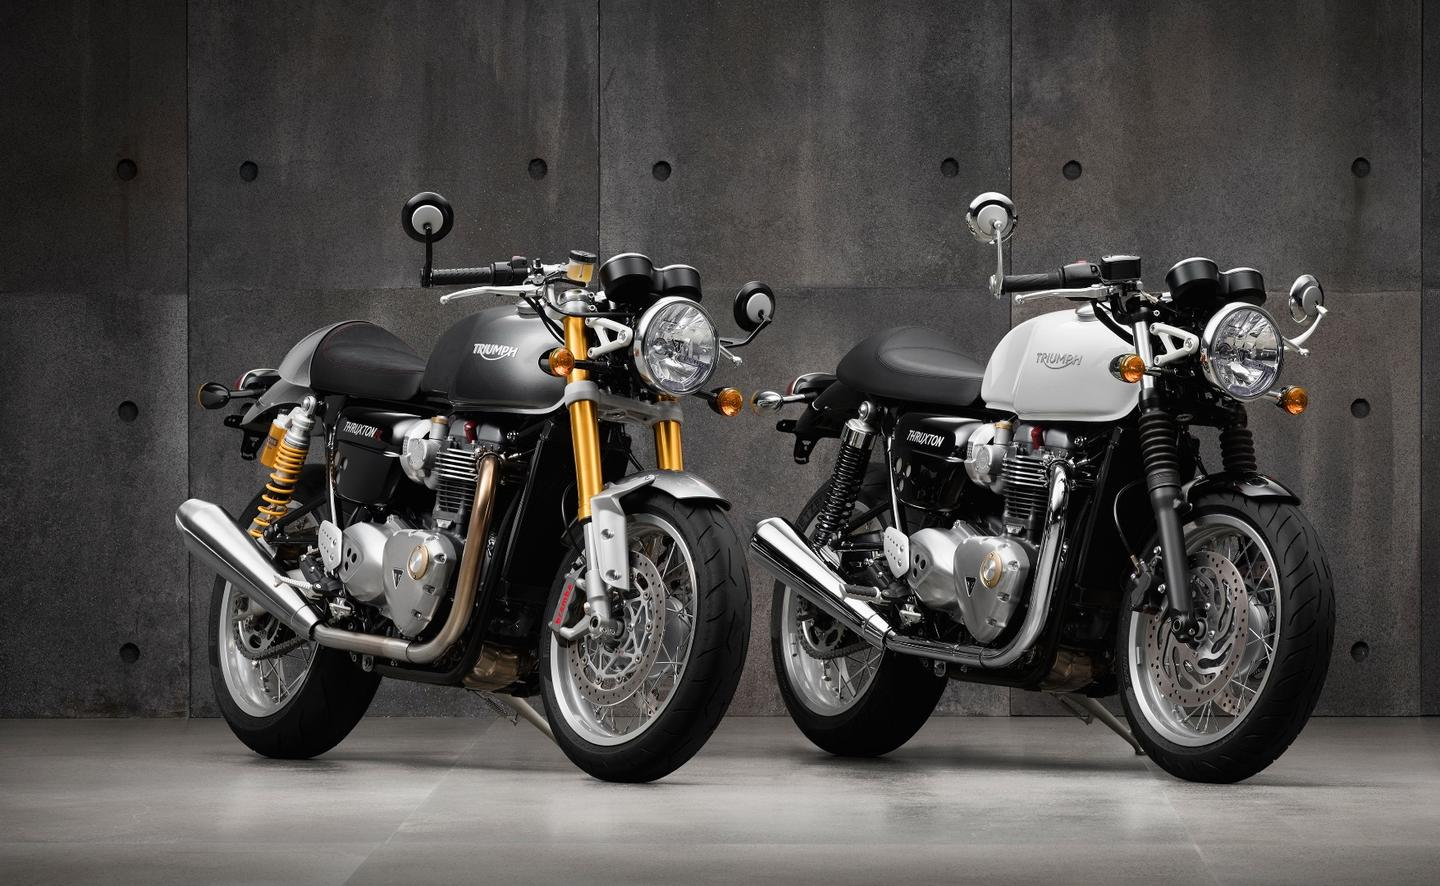 The Thruxton is named after the 500-mile endurance race series that Triumph once dominated with the same motorcycle that broke the 100 mph lap record at the Isle of Man